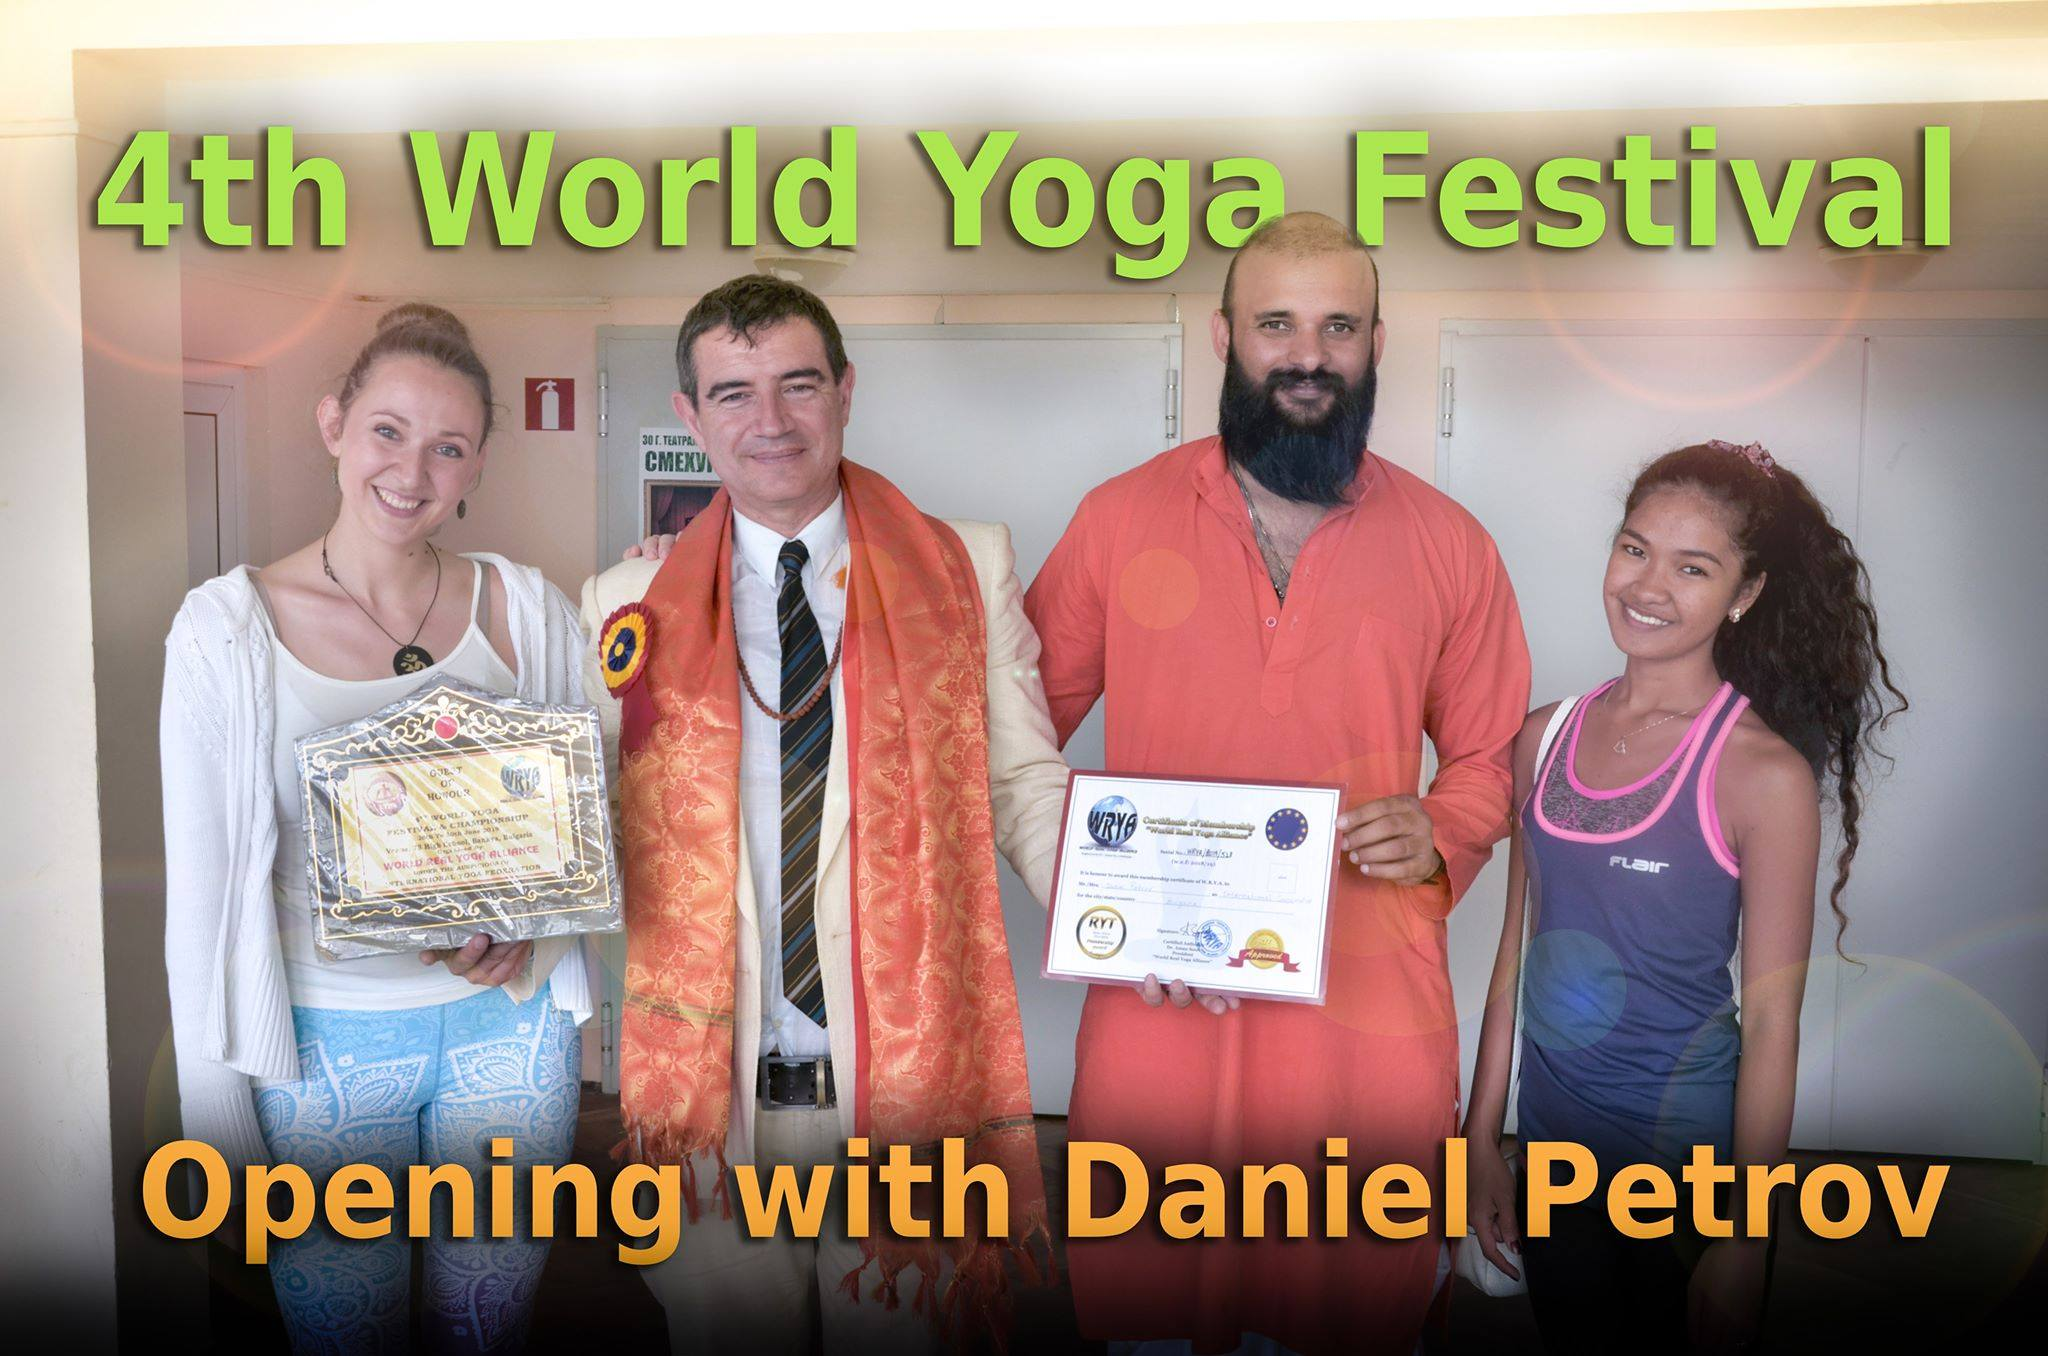 4th world yoga festival daniel petrov